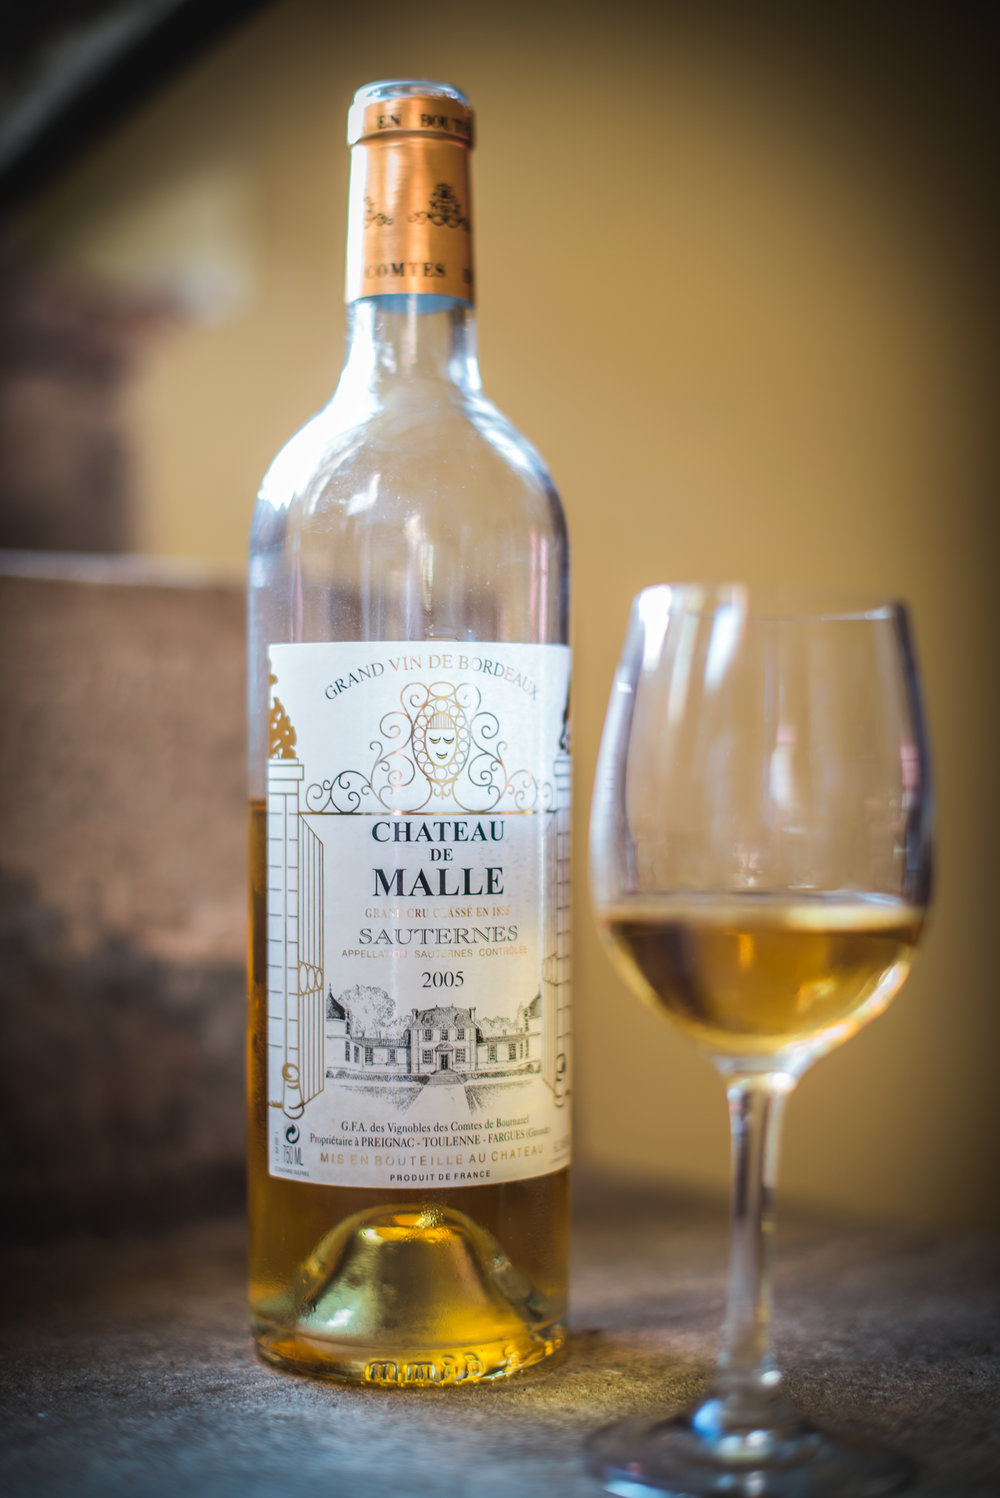 I visited Chateau DeMalle in Bordeaux last year, where I induldged in a glass of timeless Sauterne.